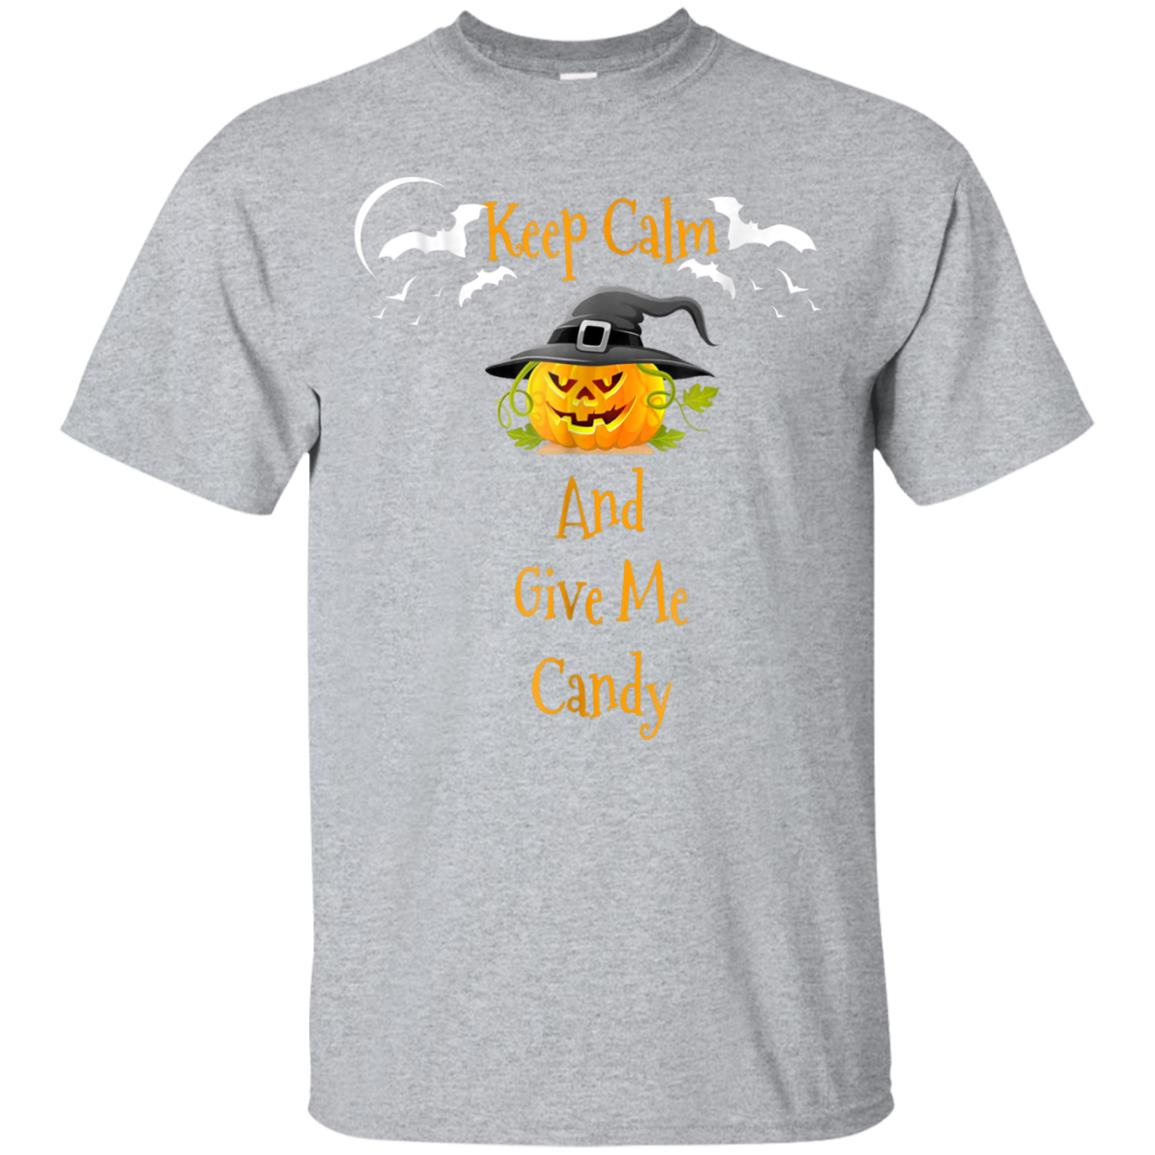 Keep Calm and Give Me Candy Shirt - Halloween Shirt 99promocode